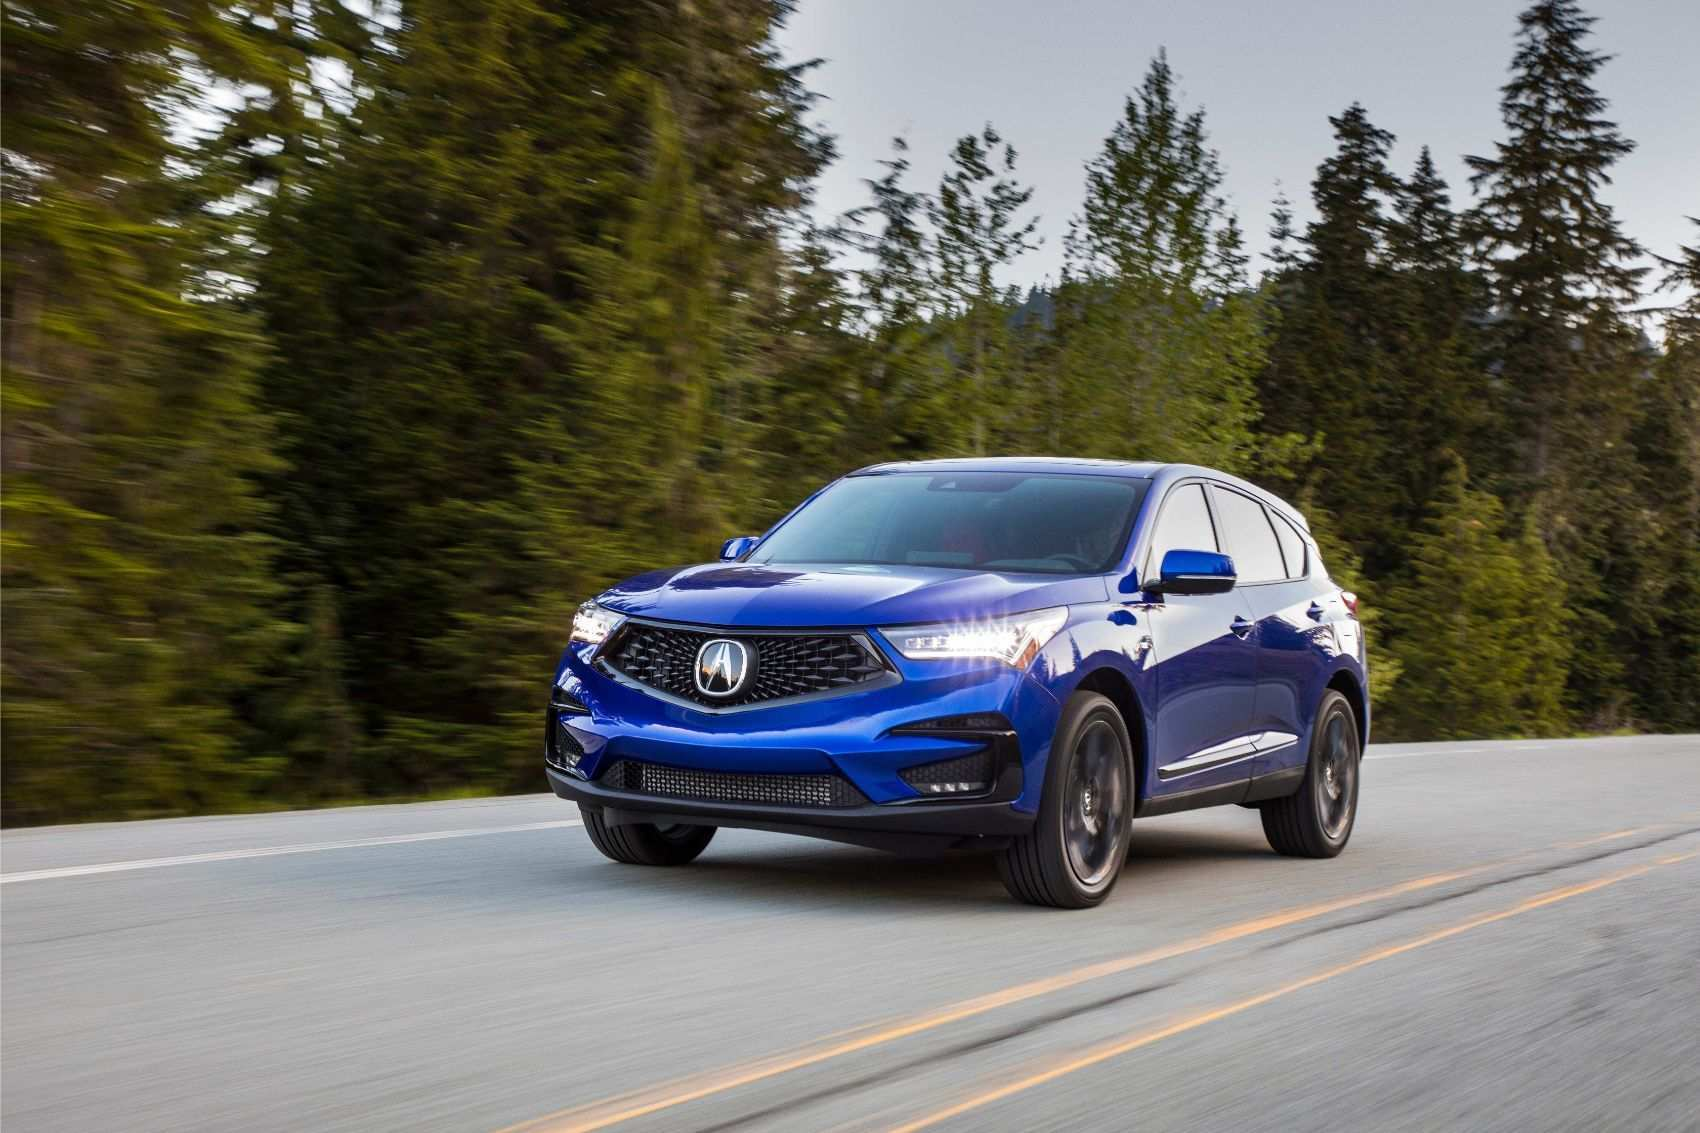 68 New Acura Rdx 2020 Release Date Rumors with Acura Rdx 2020 Release Date